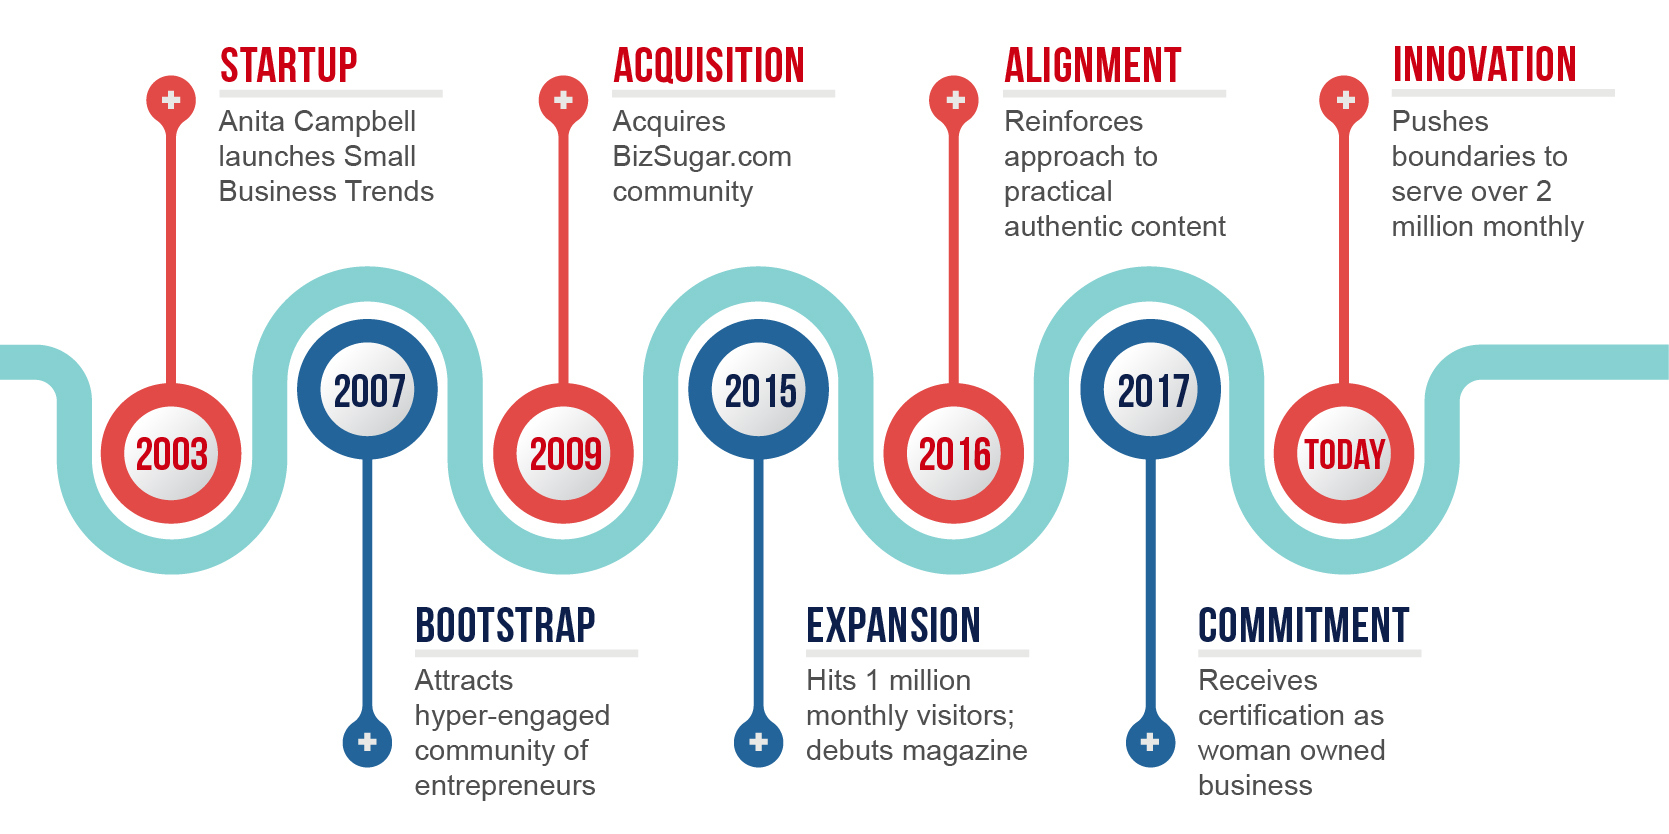 About Small Business Trends - Company Timeline